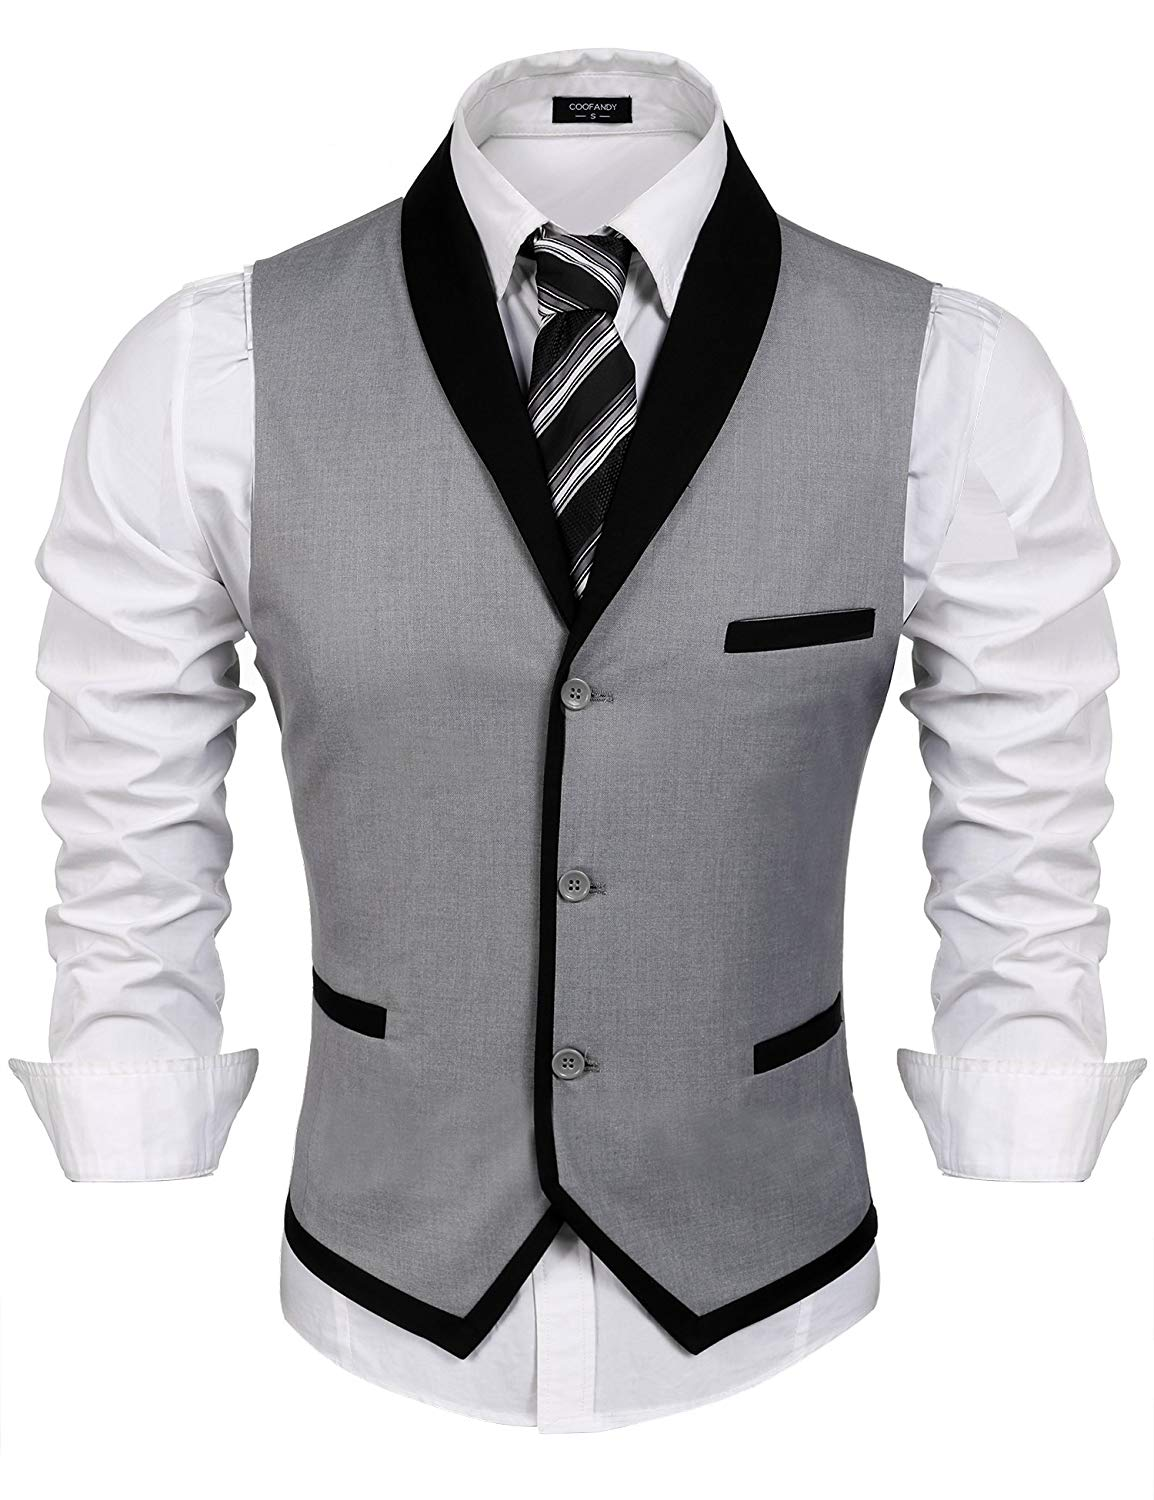 COOFANDY Men's Suit Vest Slim Fit Business Wedding Waistcoat